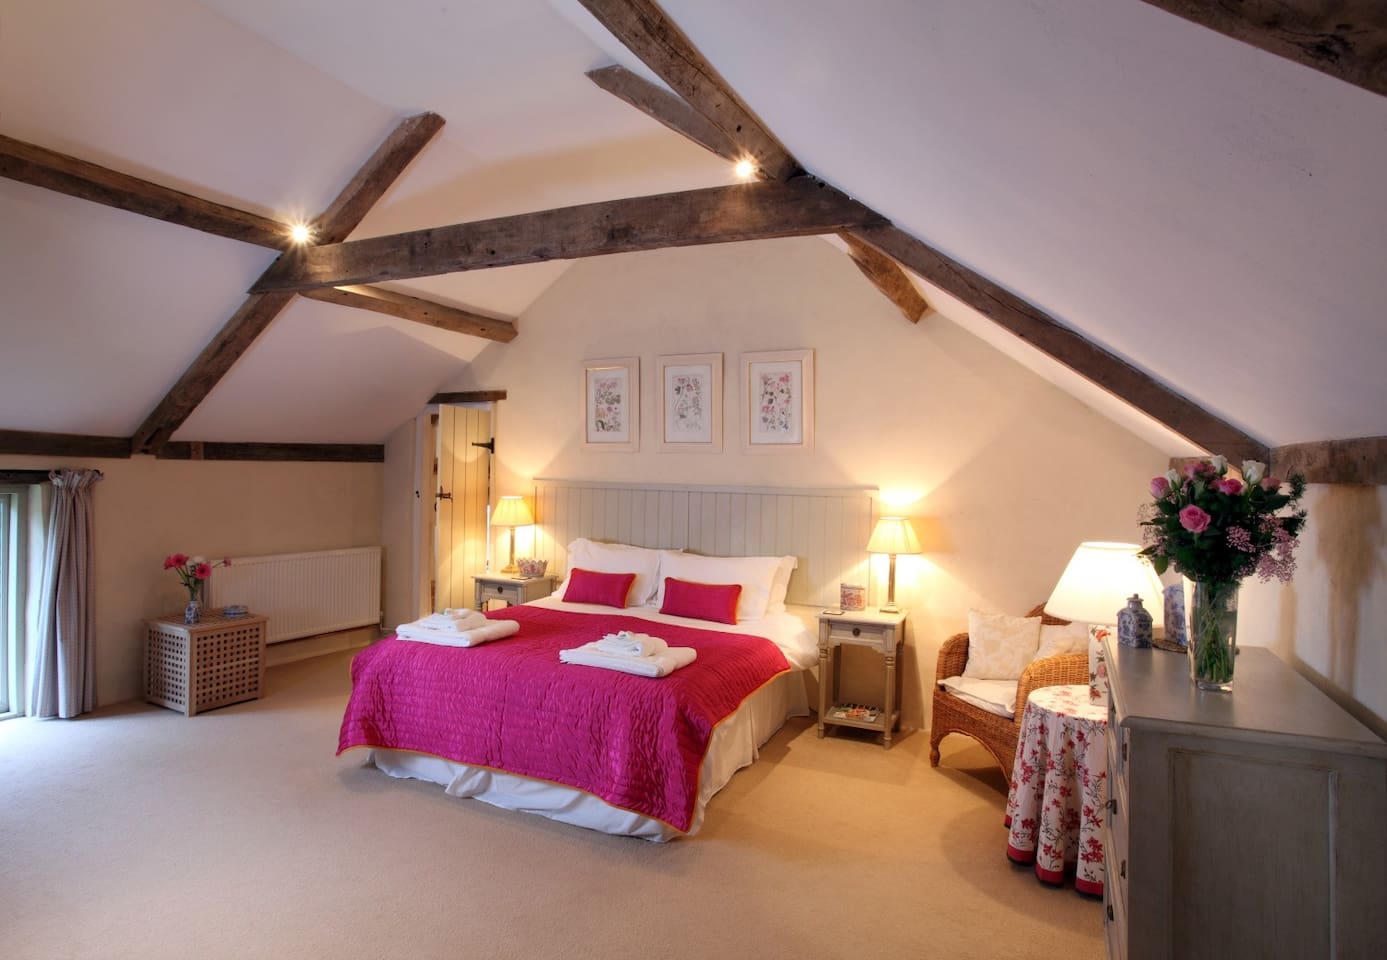 Master Bedroom with king size bed which can be converted into two singles on request